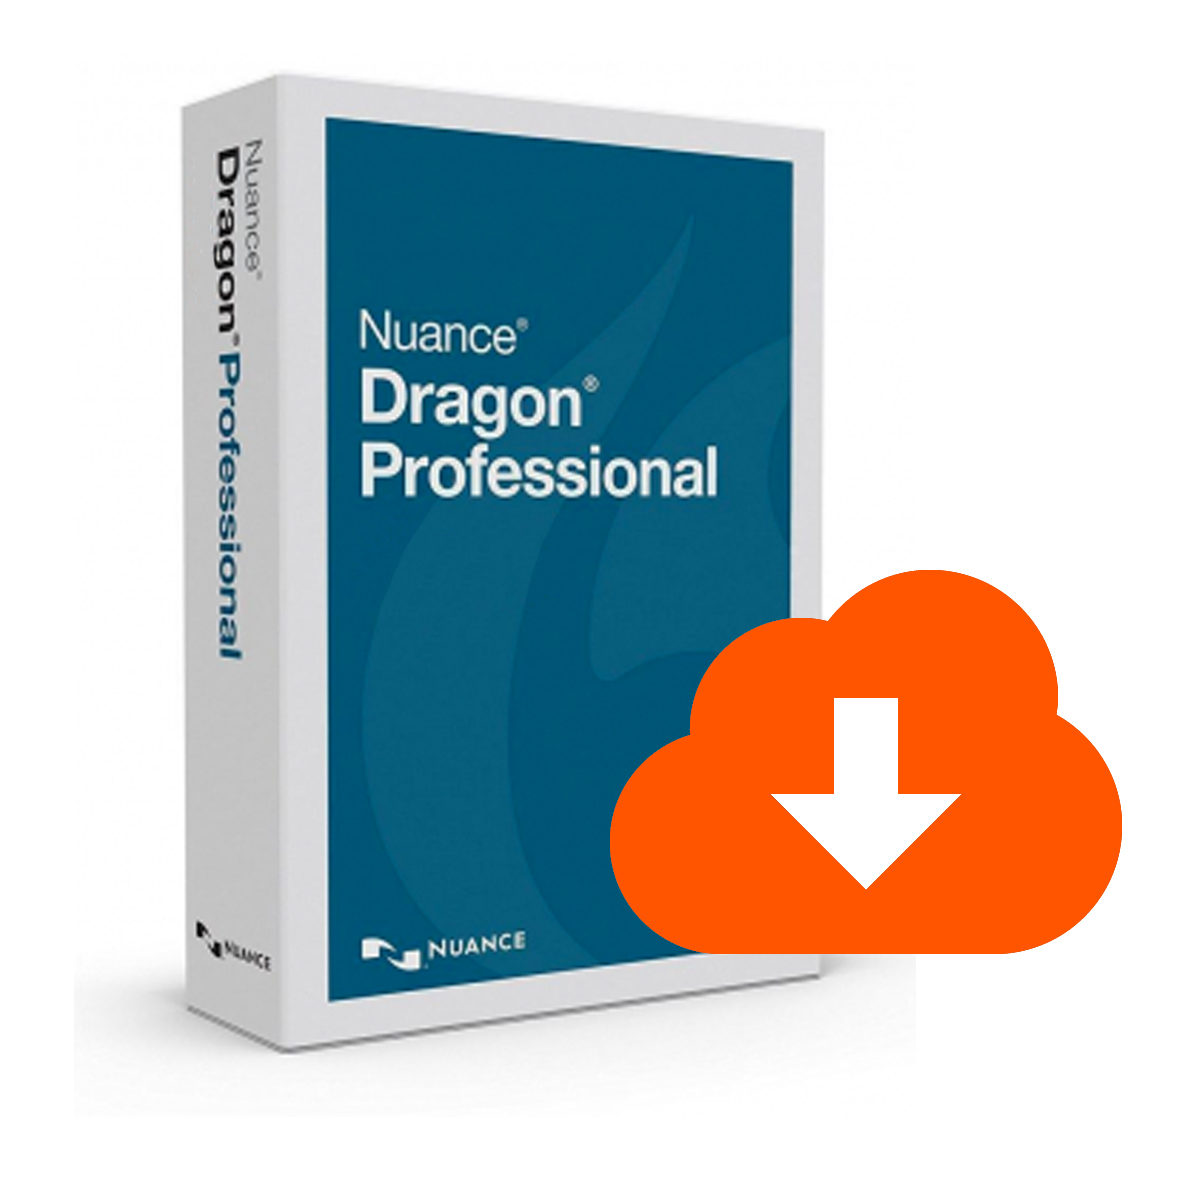 Nuance Dragon Professional Individual 15 - Upgrade from Premium 12 and up Download